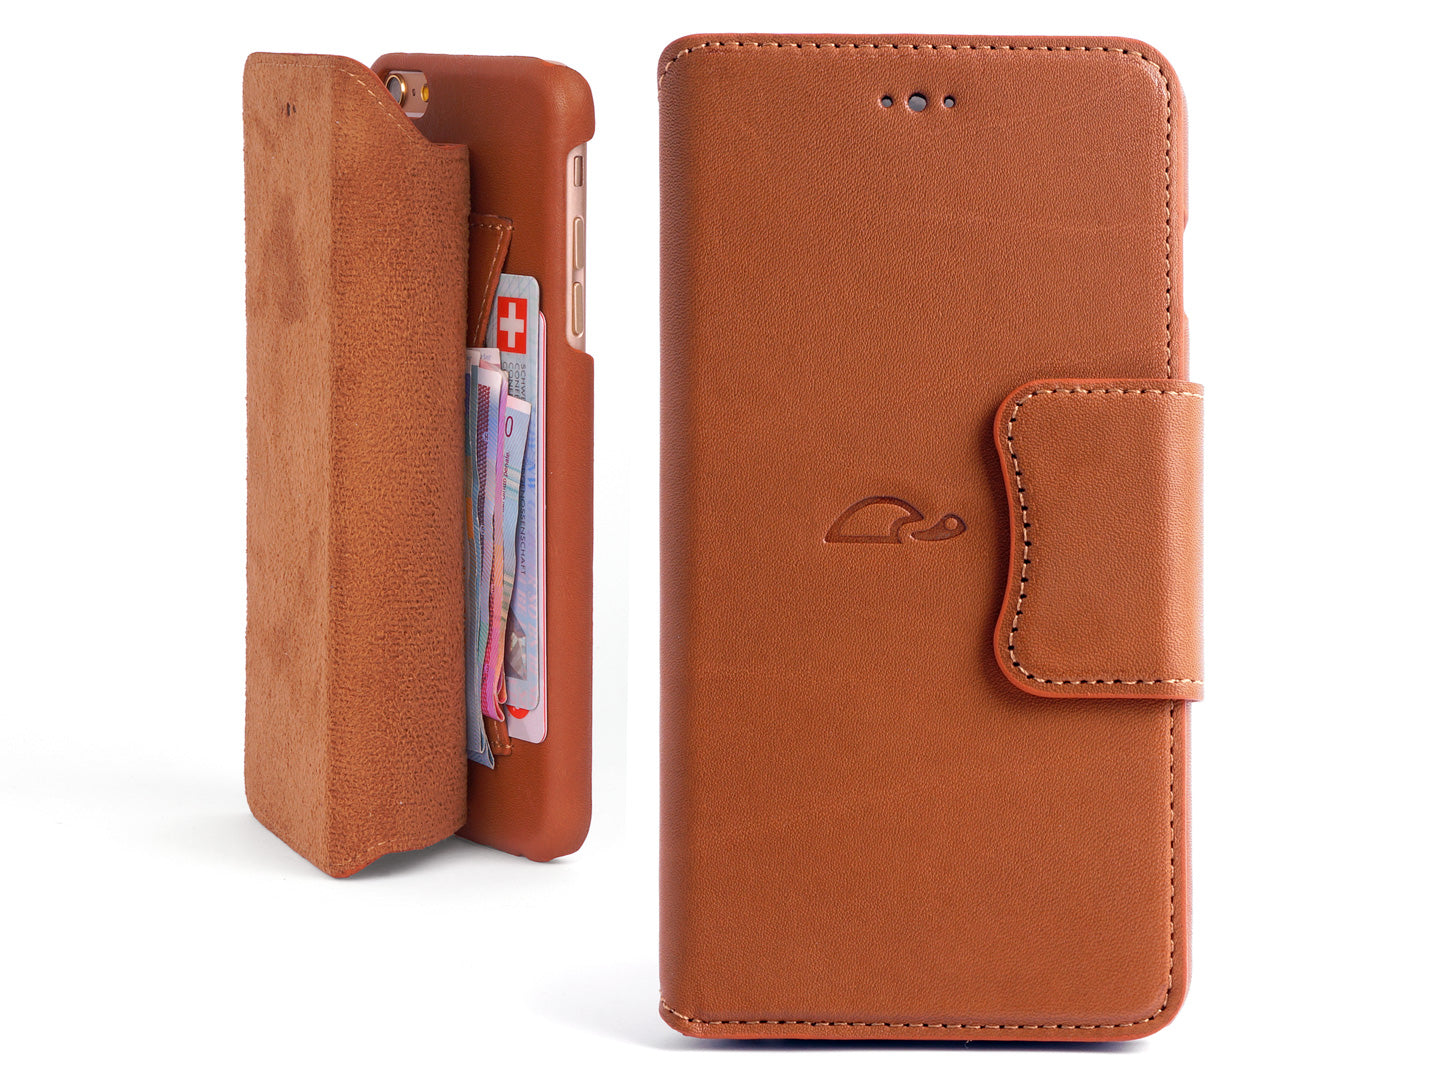 b9263914d2c09 iPhone 6 Leather Wallet Case - With Cards Pocket and Stand function ...